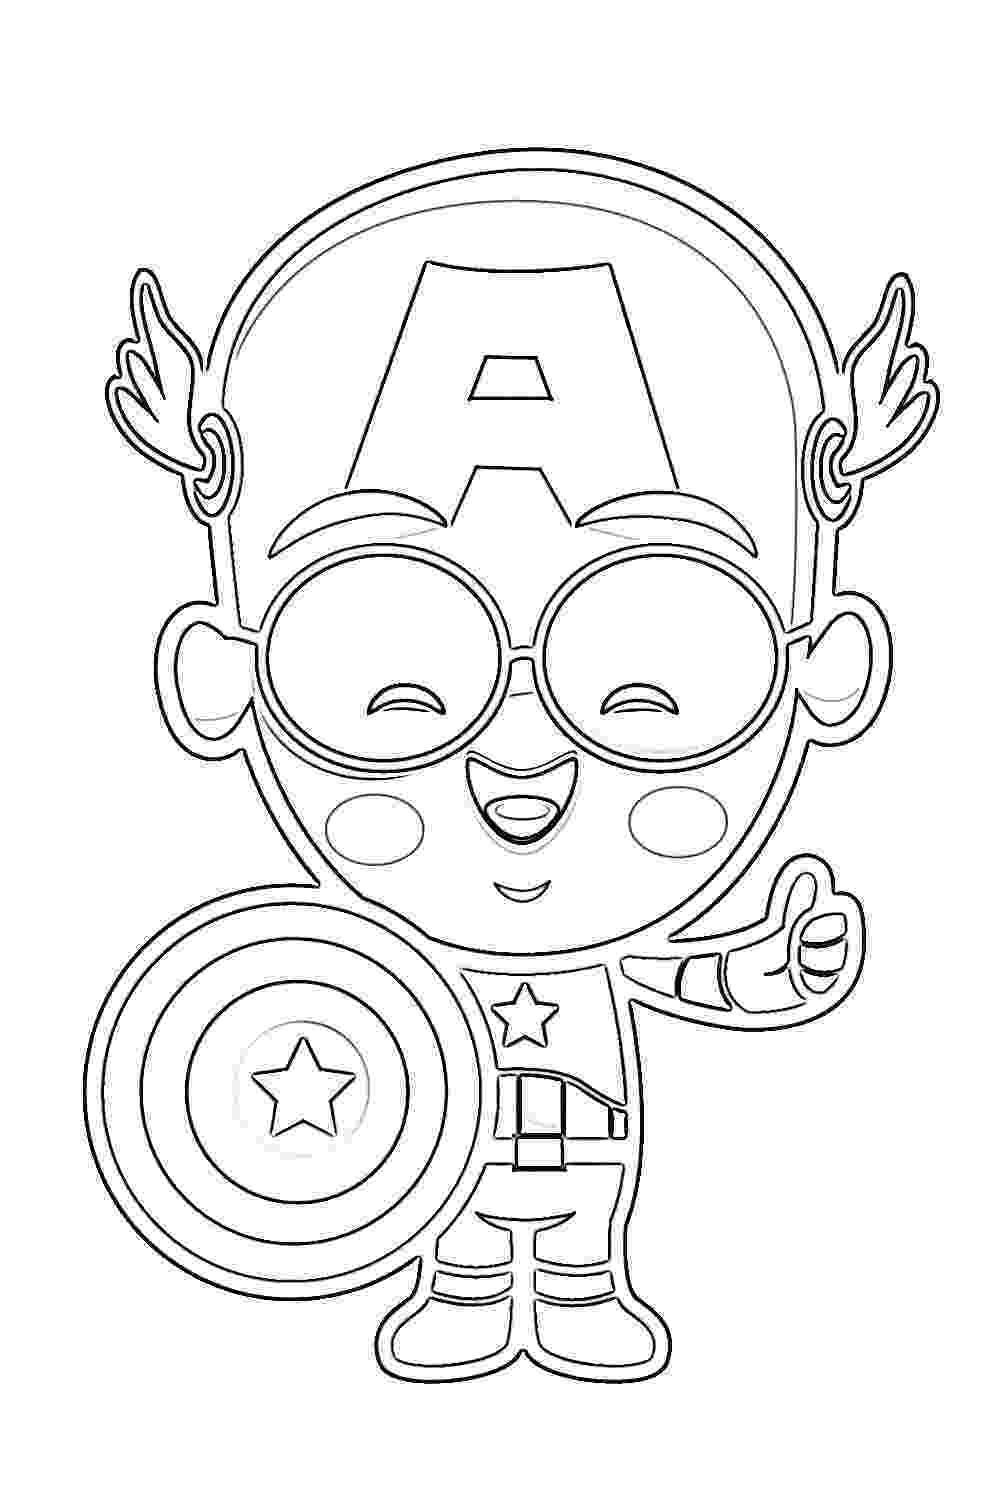 avengers printable coloring pages craftoholic ultimate avengers coloring pages printable coloring avengers pages